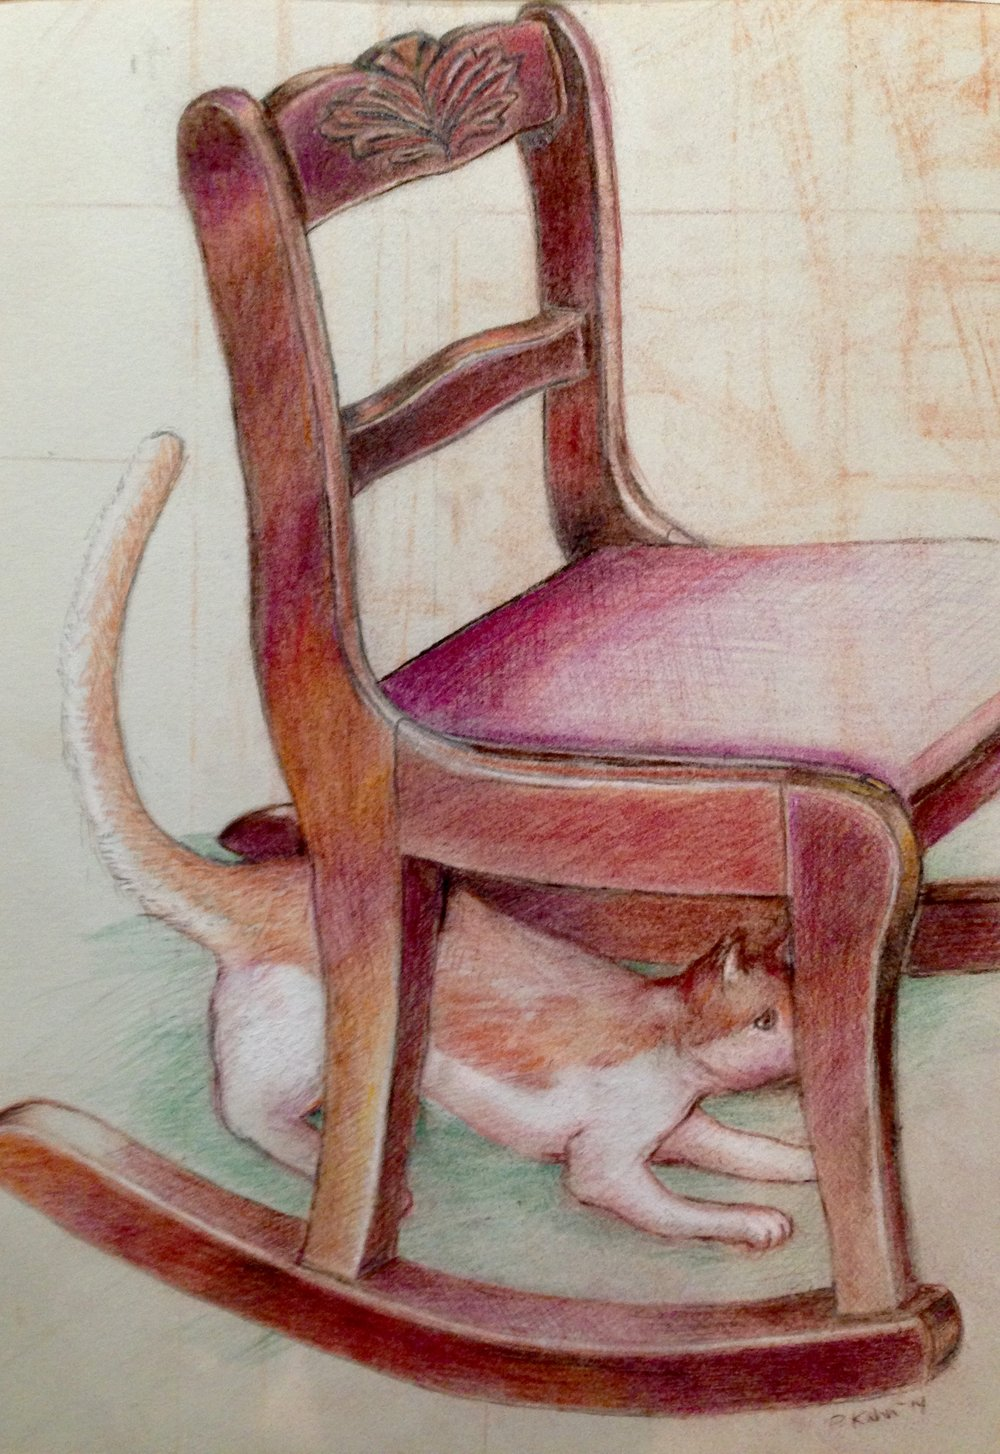 - This is Goldman the cat who belongs to friends Myrna and Allen.He is hiding like a lot of animals in the prairies, only not in the grasses.Goldman the Cat, color pencils and conte, 2014, Patty Kahn Copyright